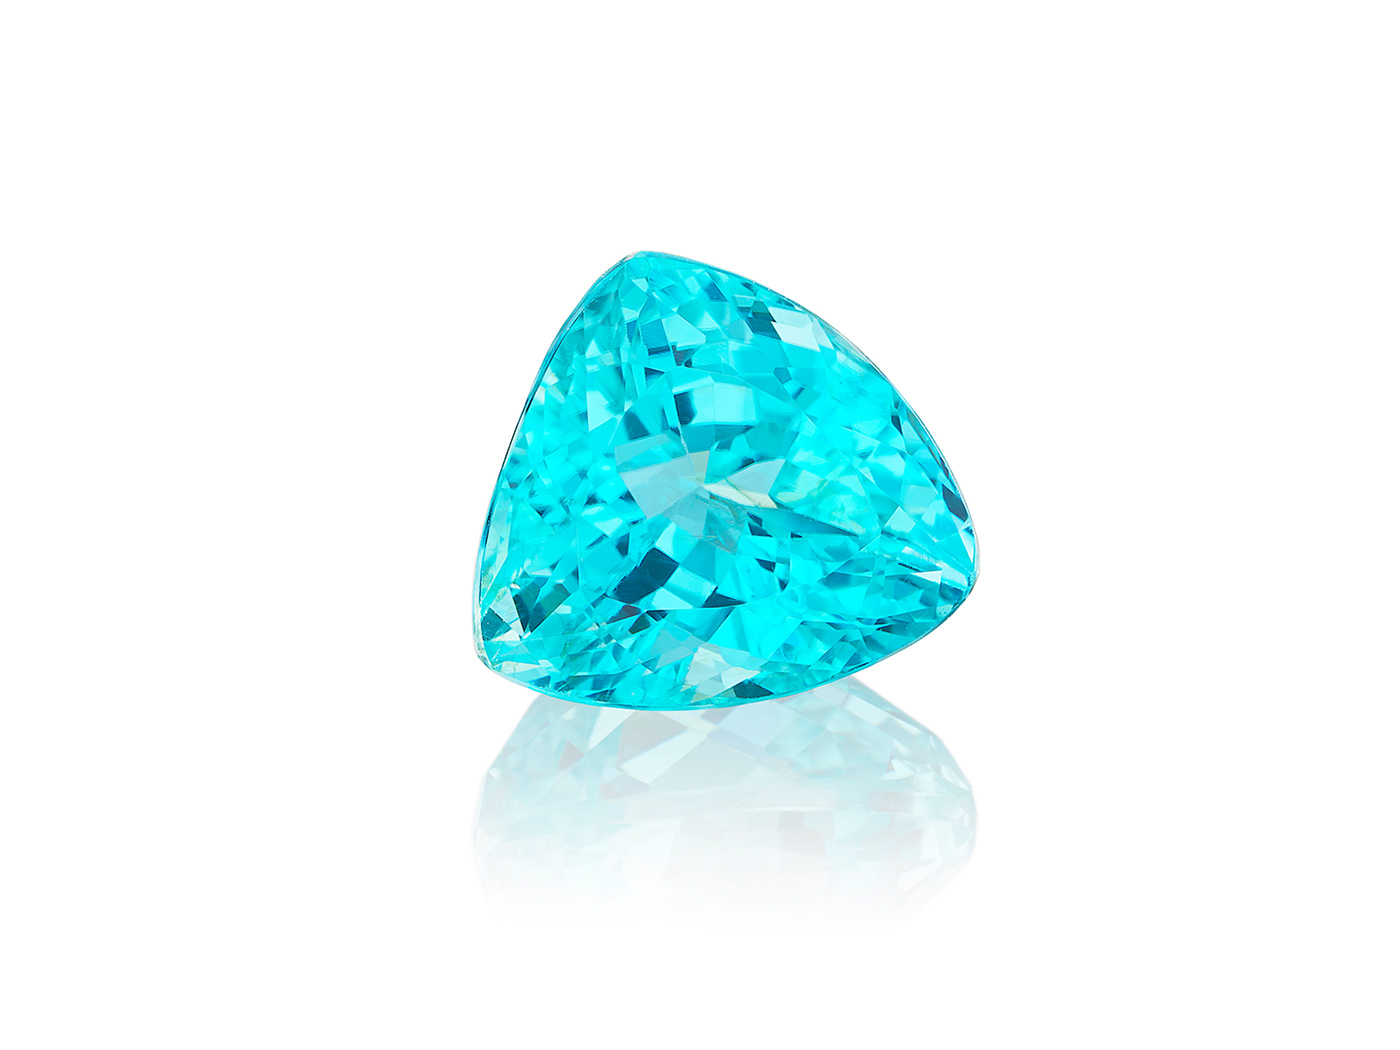 dcdffbba5 Paraiba - Captivating Colours — Kreis